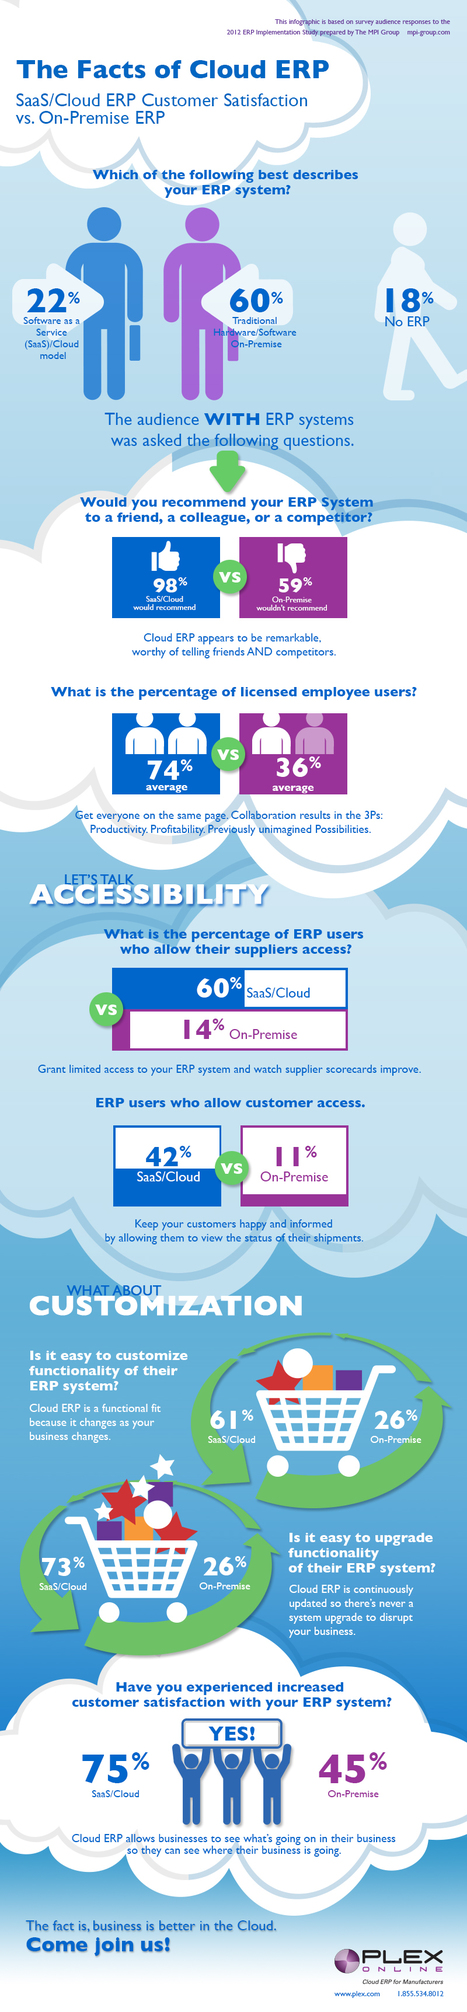 INFOGRAPHIC: The Facts Of Cloud ERP | e-governance solutions | Scoop.it